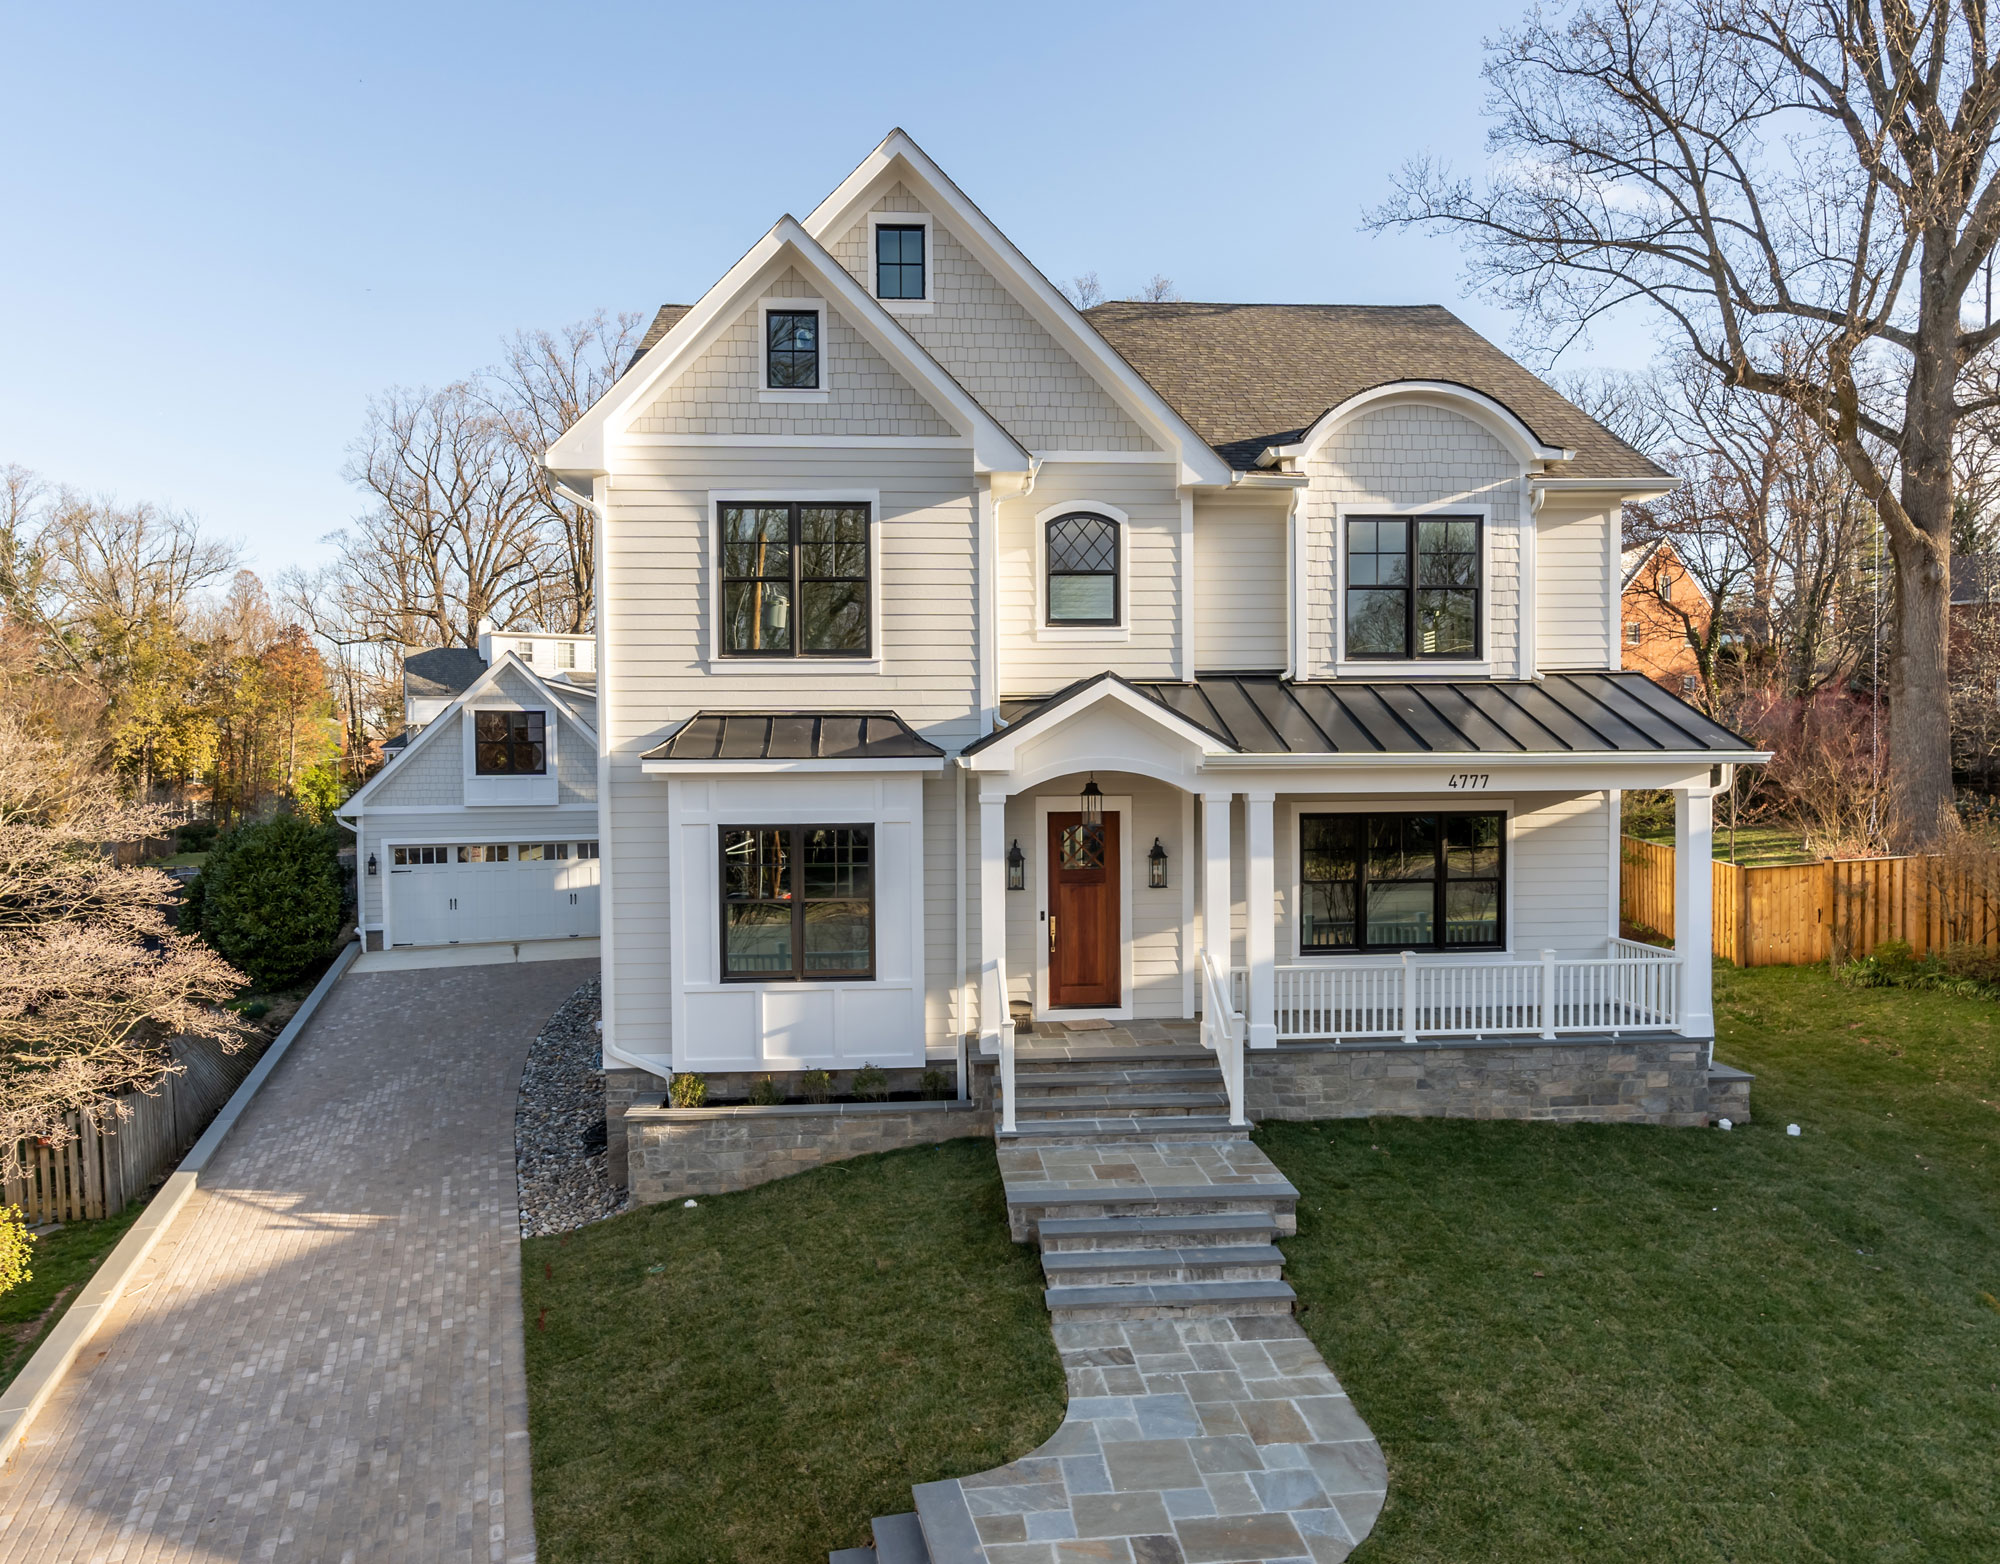 New construction custom designed and built for a family in North Arlington, Virginia